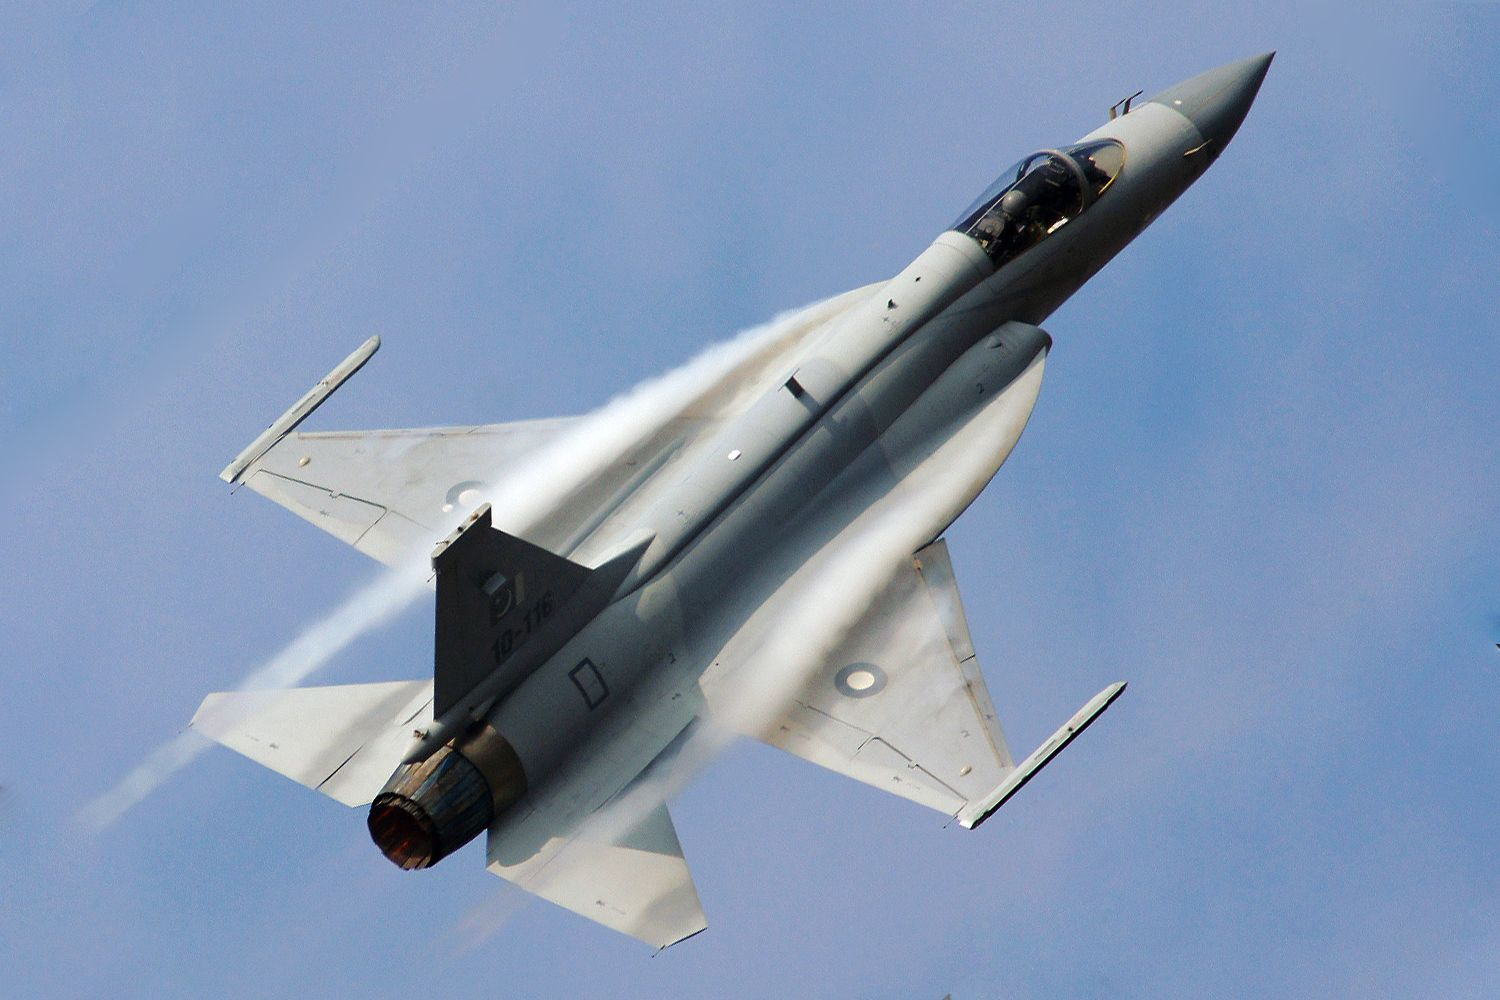 China Confirms First Export Sale of JF-17 Fighter ...